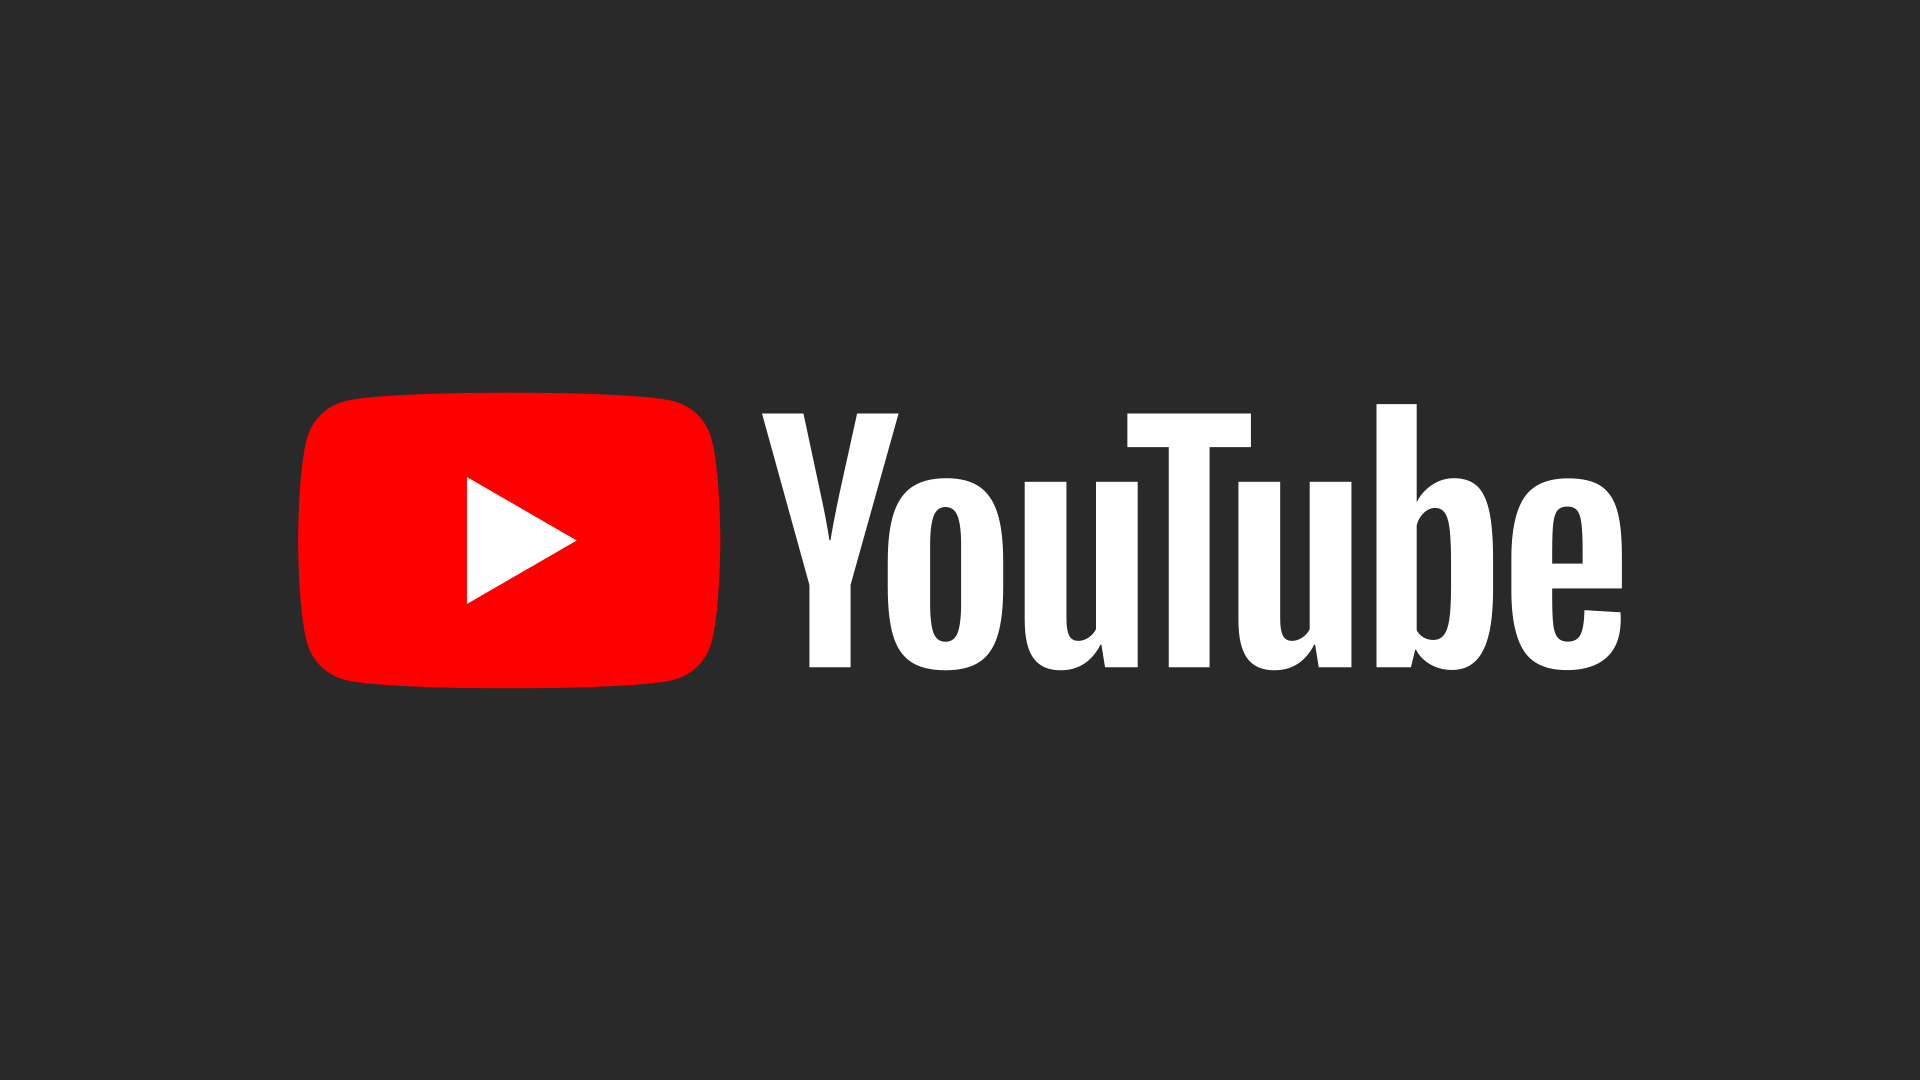 Analysis of all YouTube trending videos in US for 2019 - RapidAPI